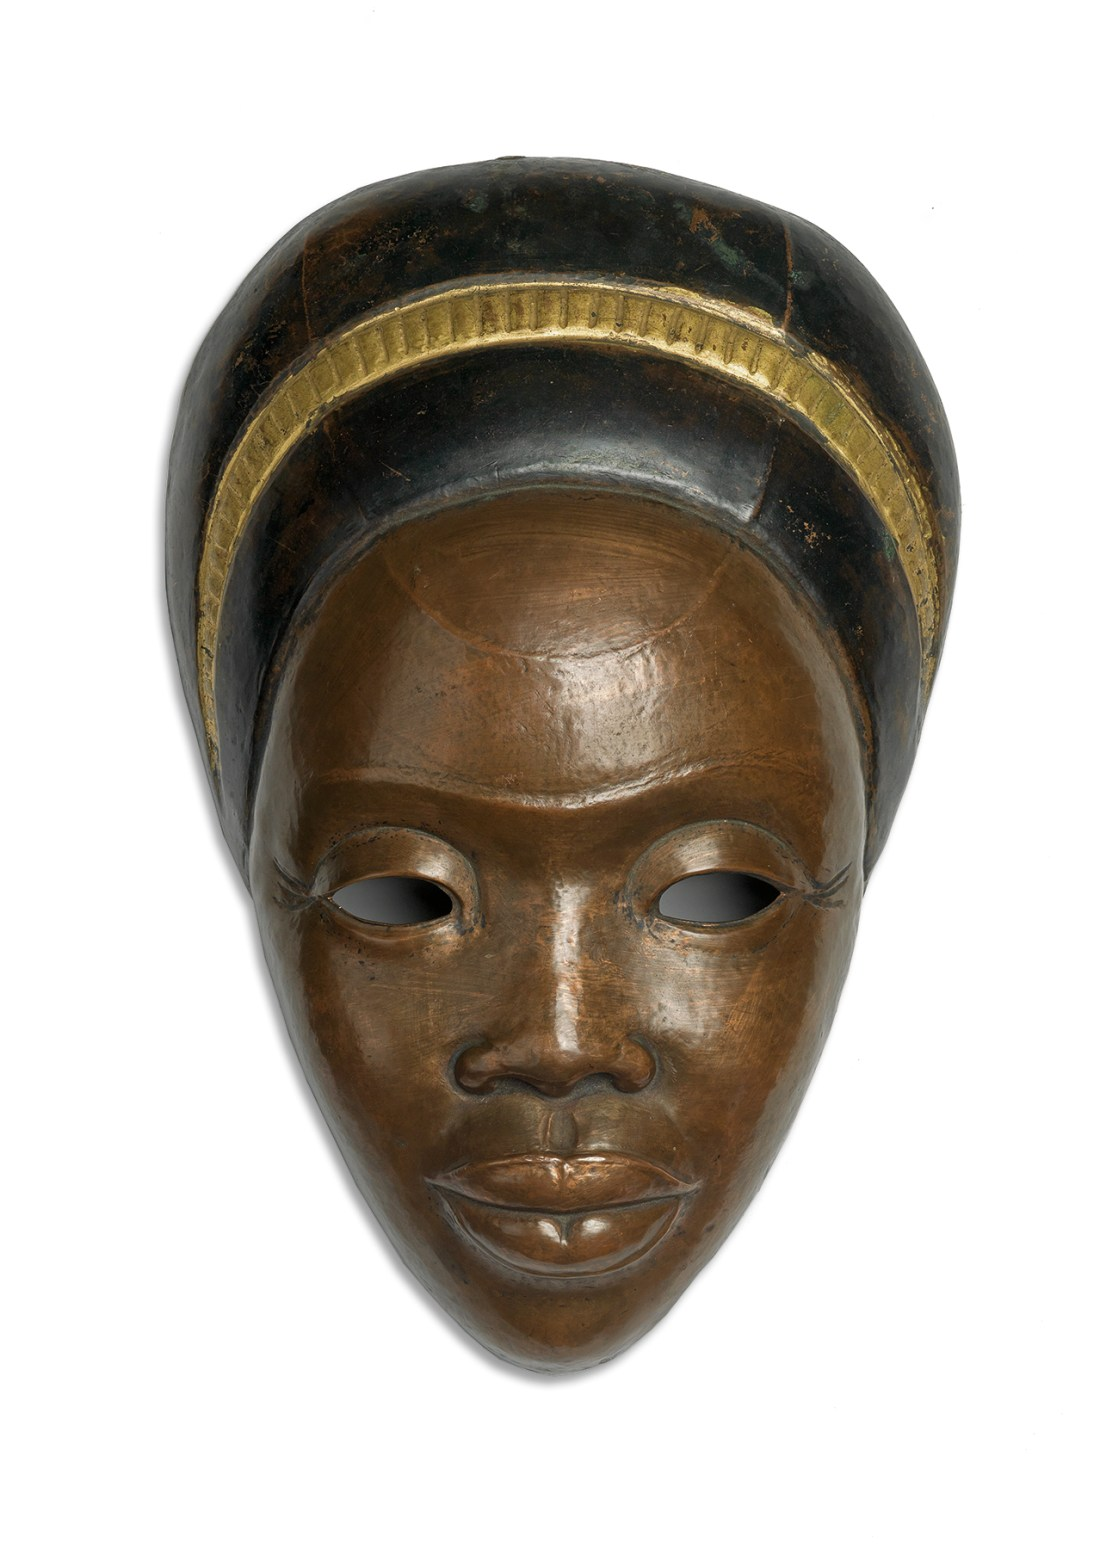 Sargent Johnson's Untitled (Negro Mother), a copper repoussé mask created circa 1935-36. It measures about 12 inches long and is estimated at $80,000 to $120,000.